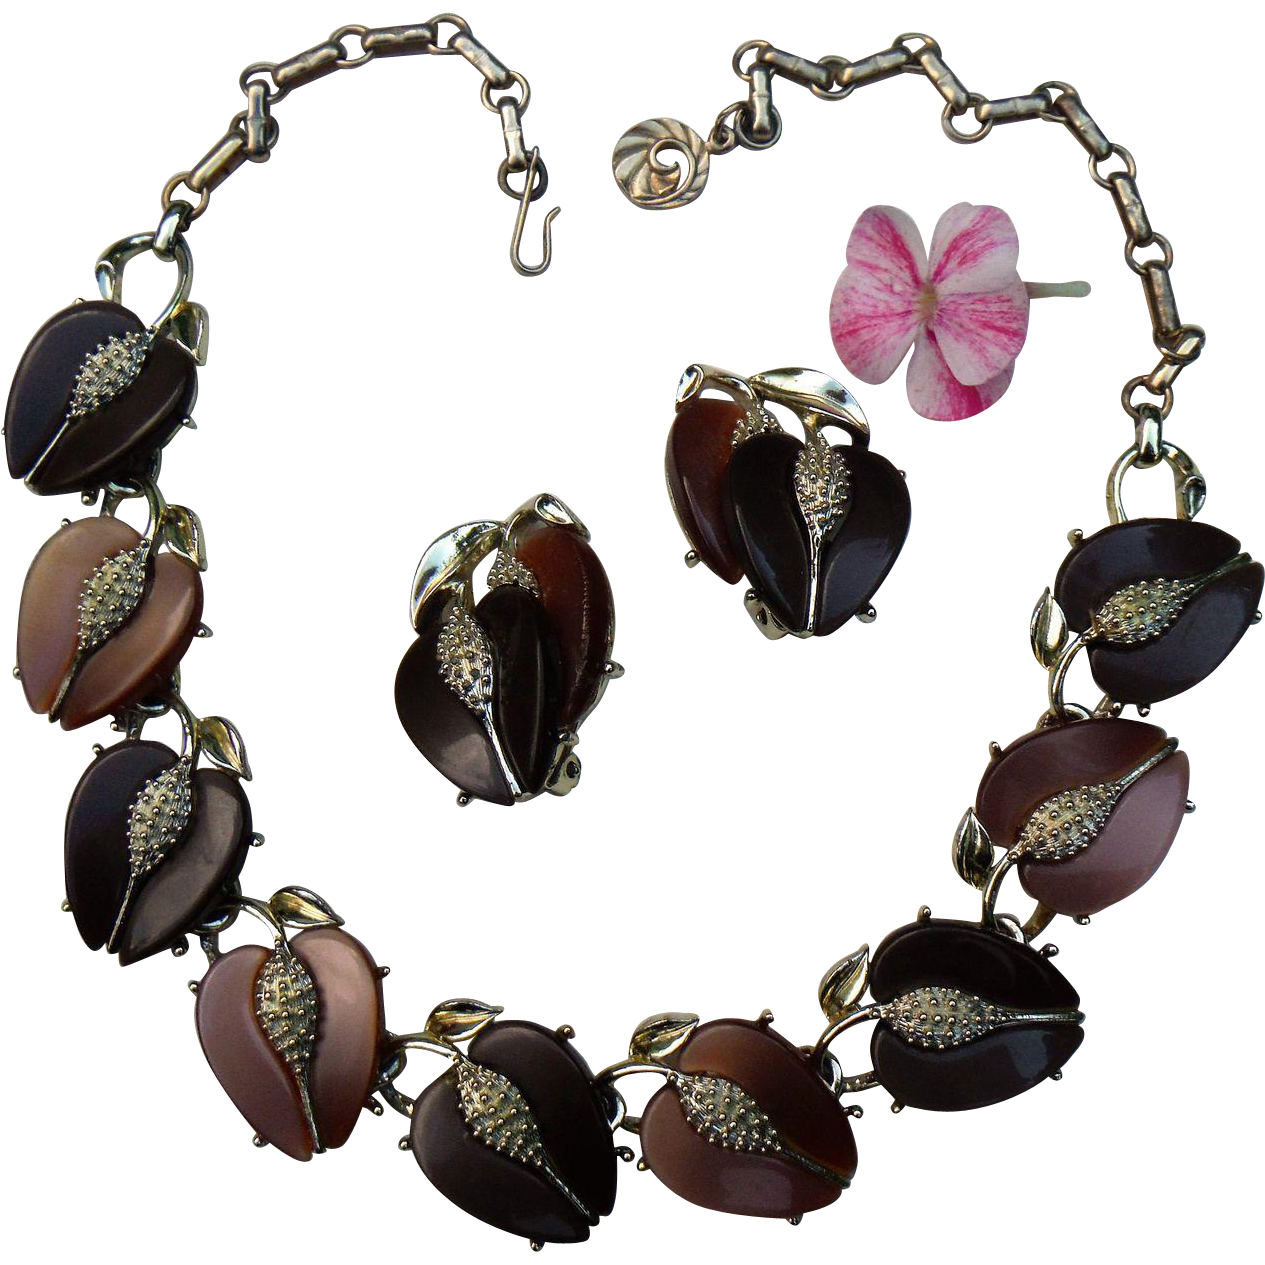 Lisner Vintage Demi Parure Thermoset Plastic Lucite Moonglow Peach Fruit & Leaves Earrings Choker Necklace Caramel Browns